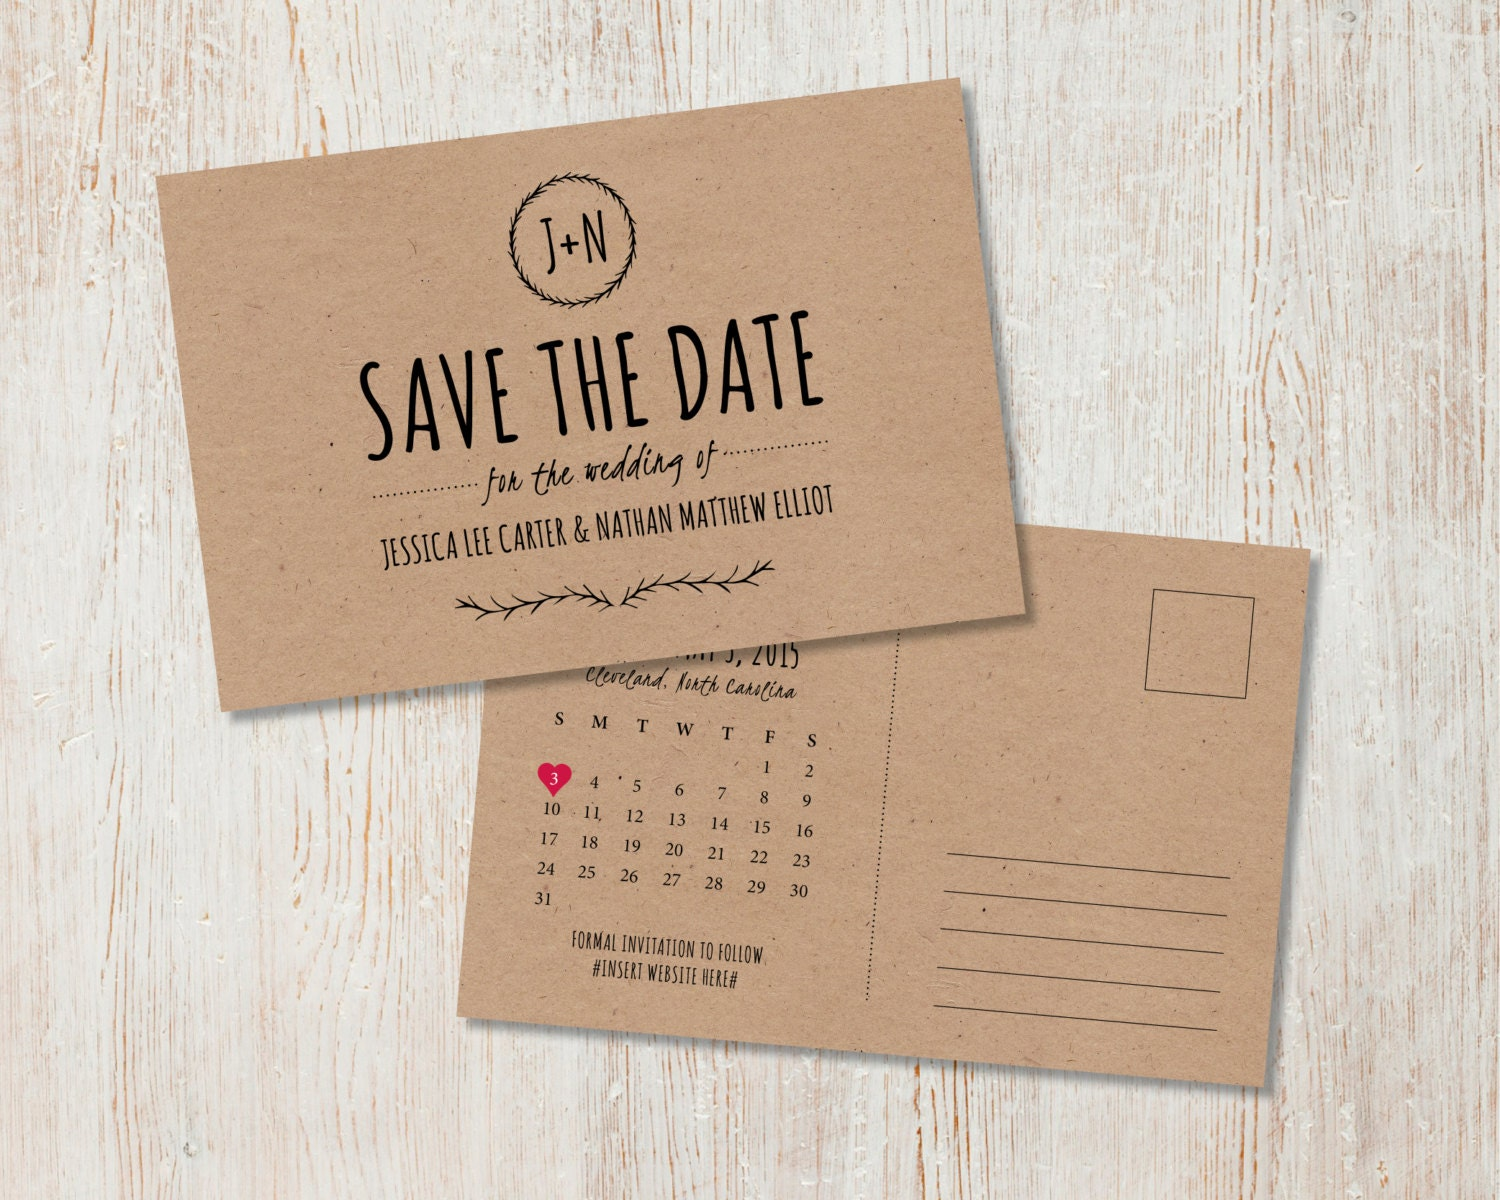 Wedding Save The Date Postcards: Rustic Wedding Save The Date, Kraft Save The Date, Rustic